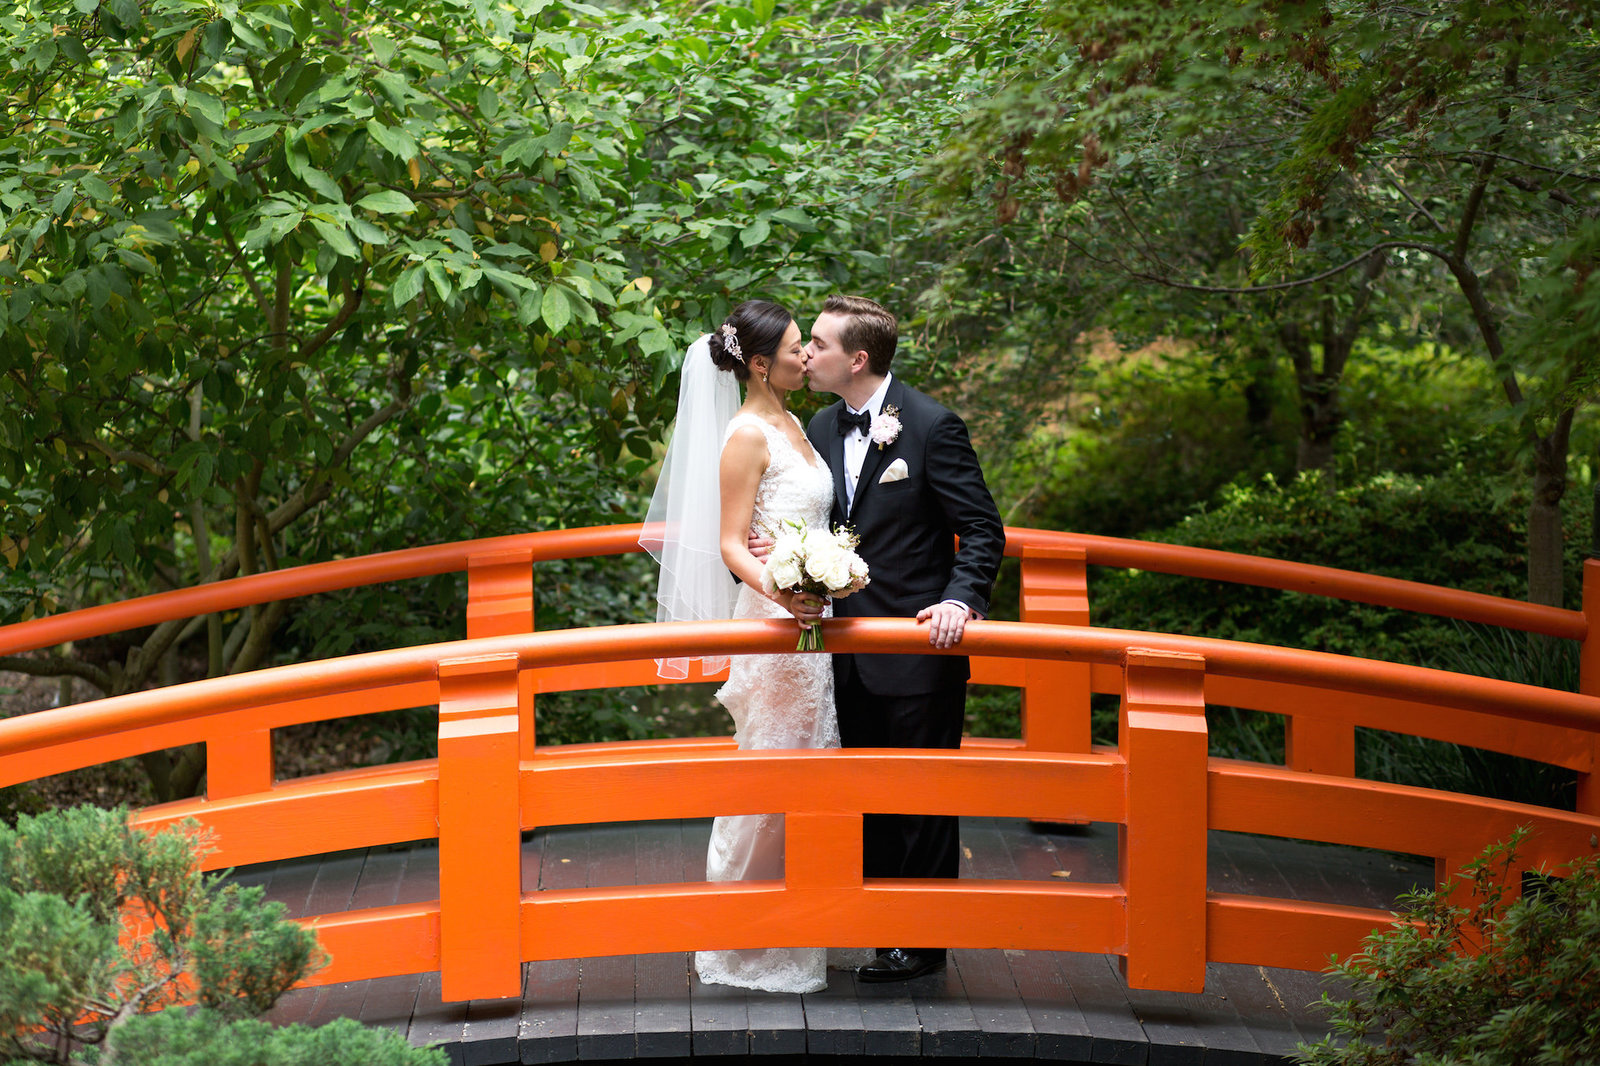 bride and groom together in decanso gardens in los angeles